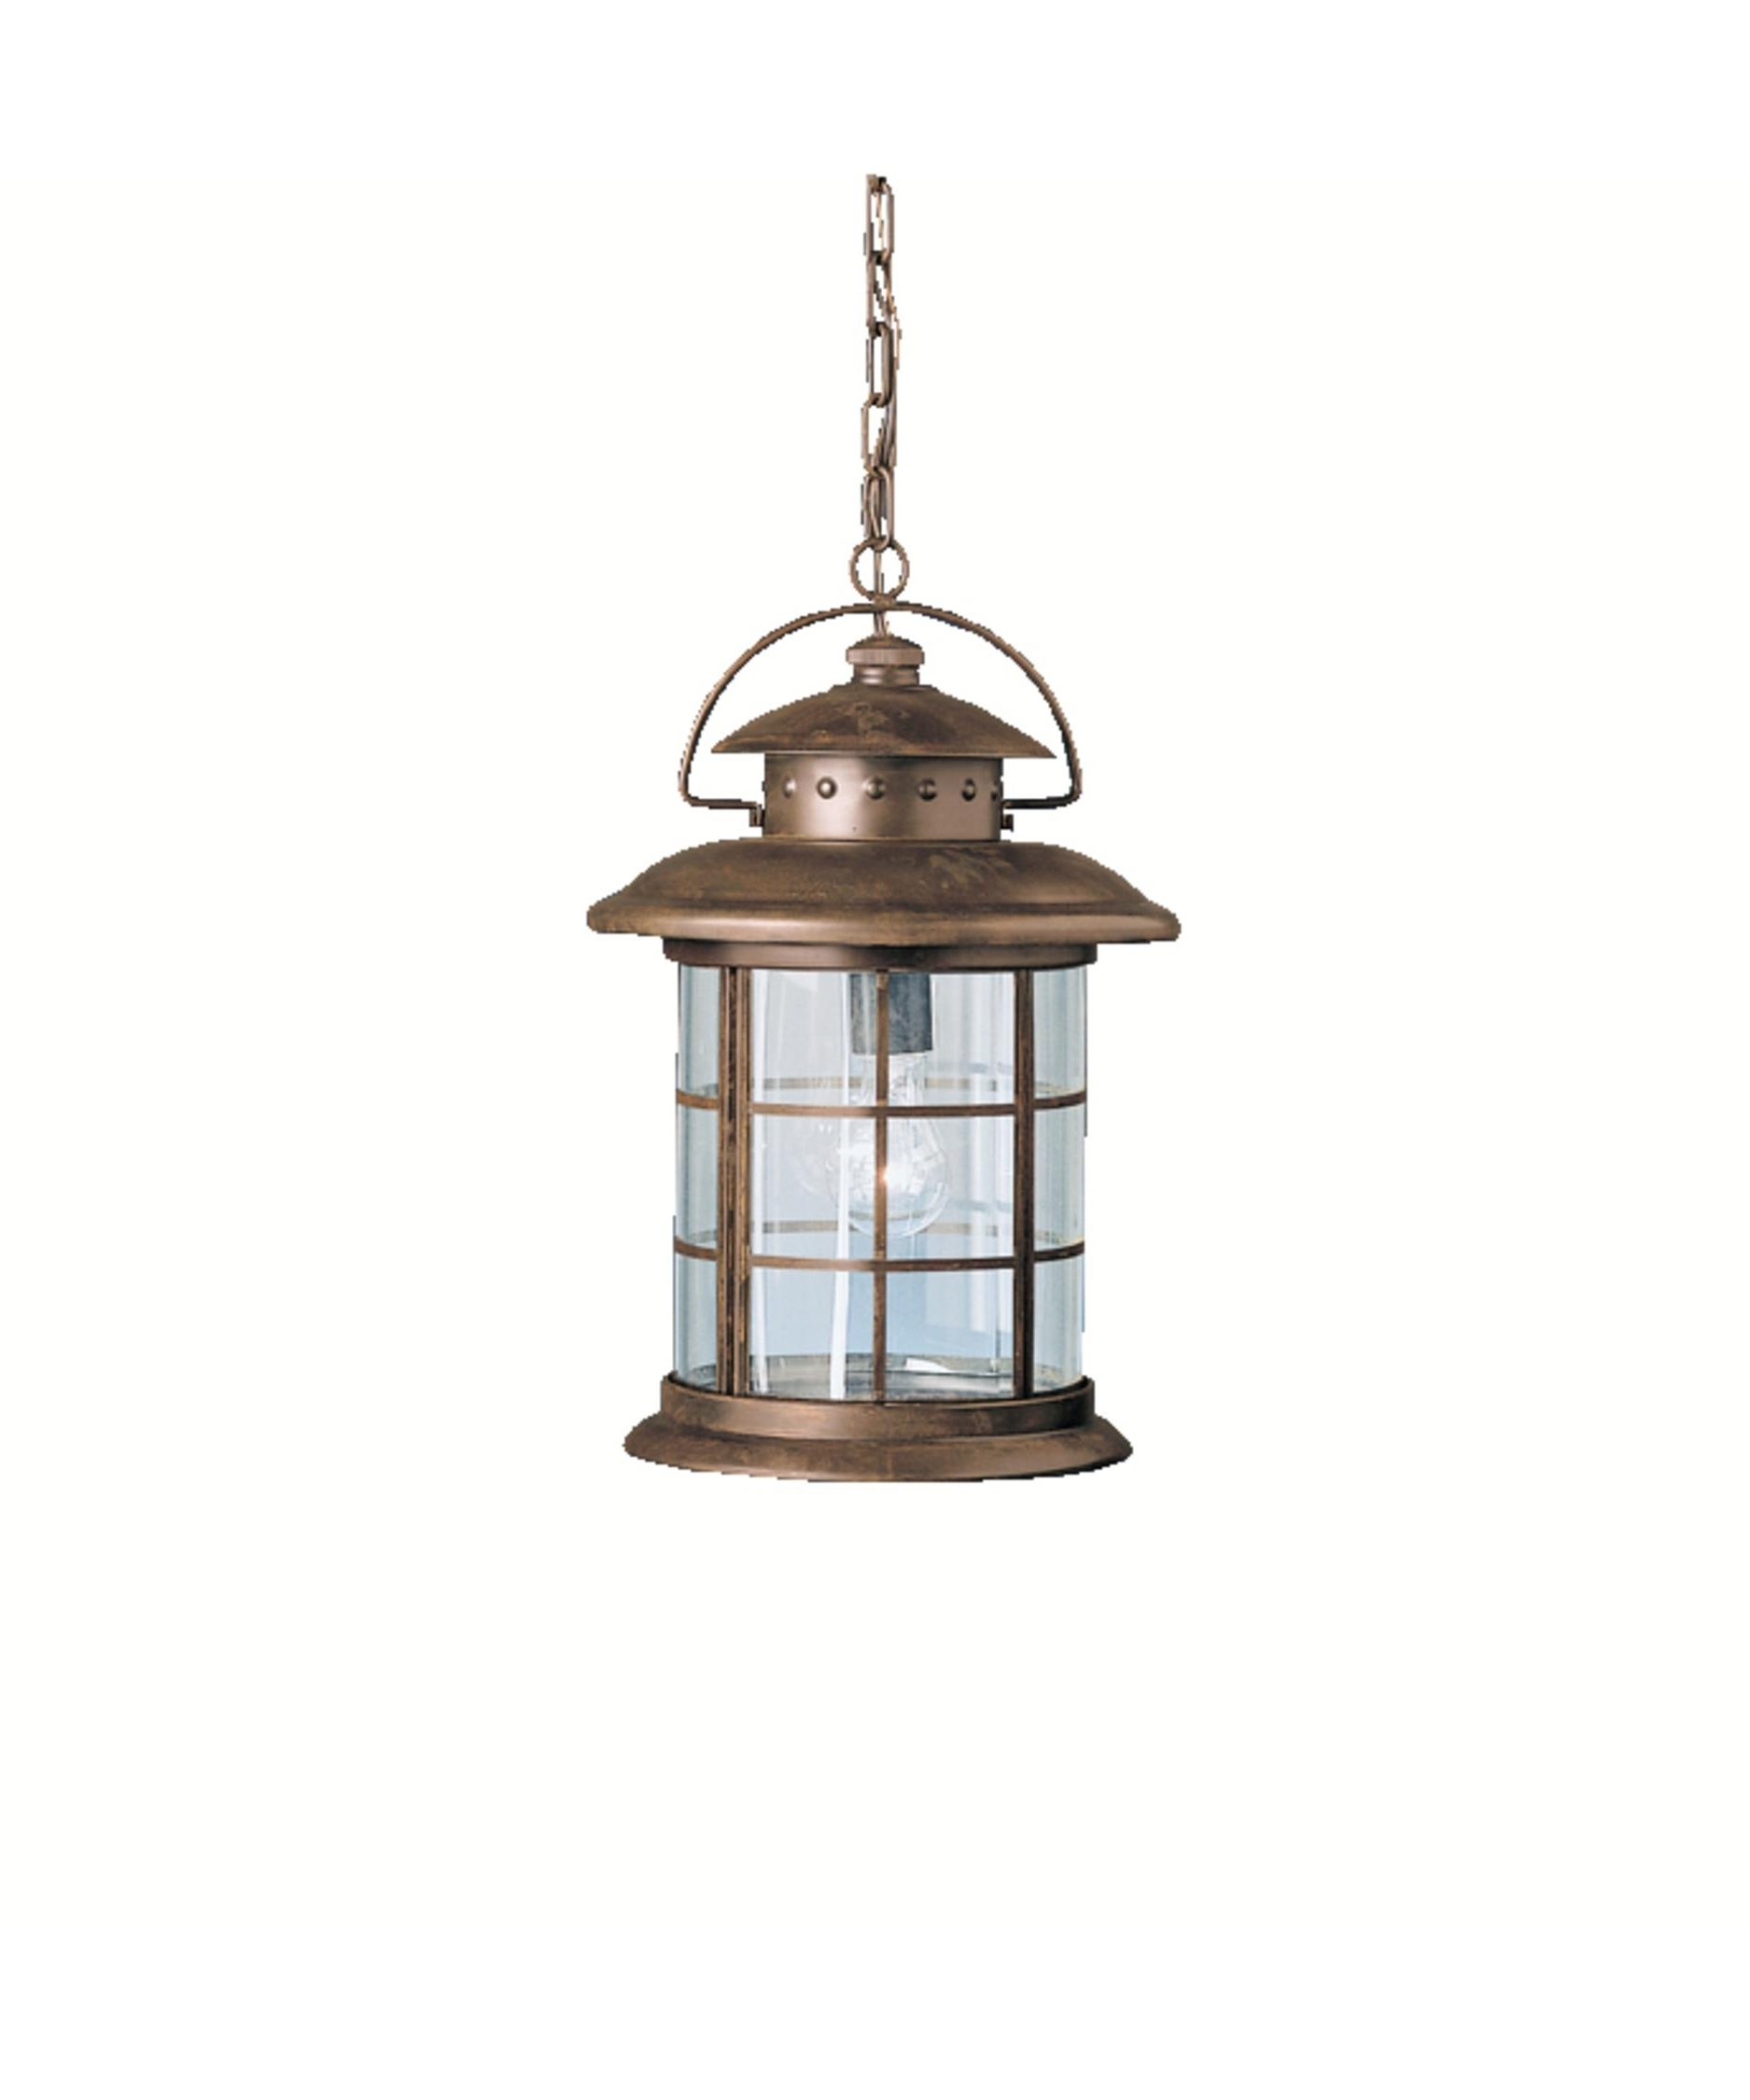 Outdoor Hanging Lanterns With Pir For Most Up To Date Kitchen : Outdoor Lighting Lantern Outdoor Lighting Lantern Style (View 14 of 20)